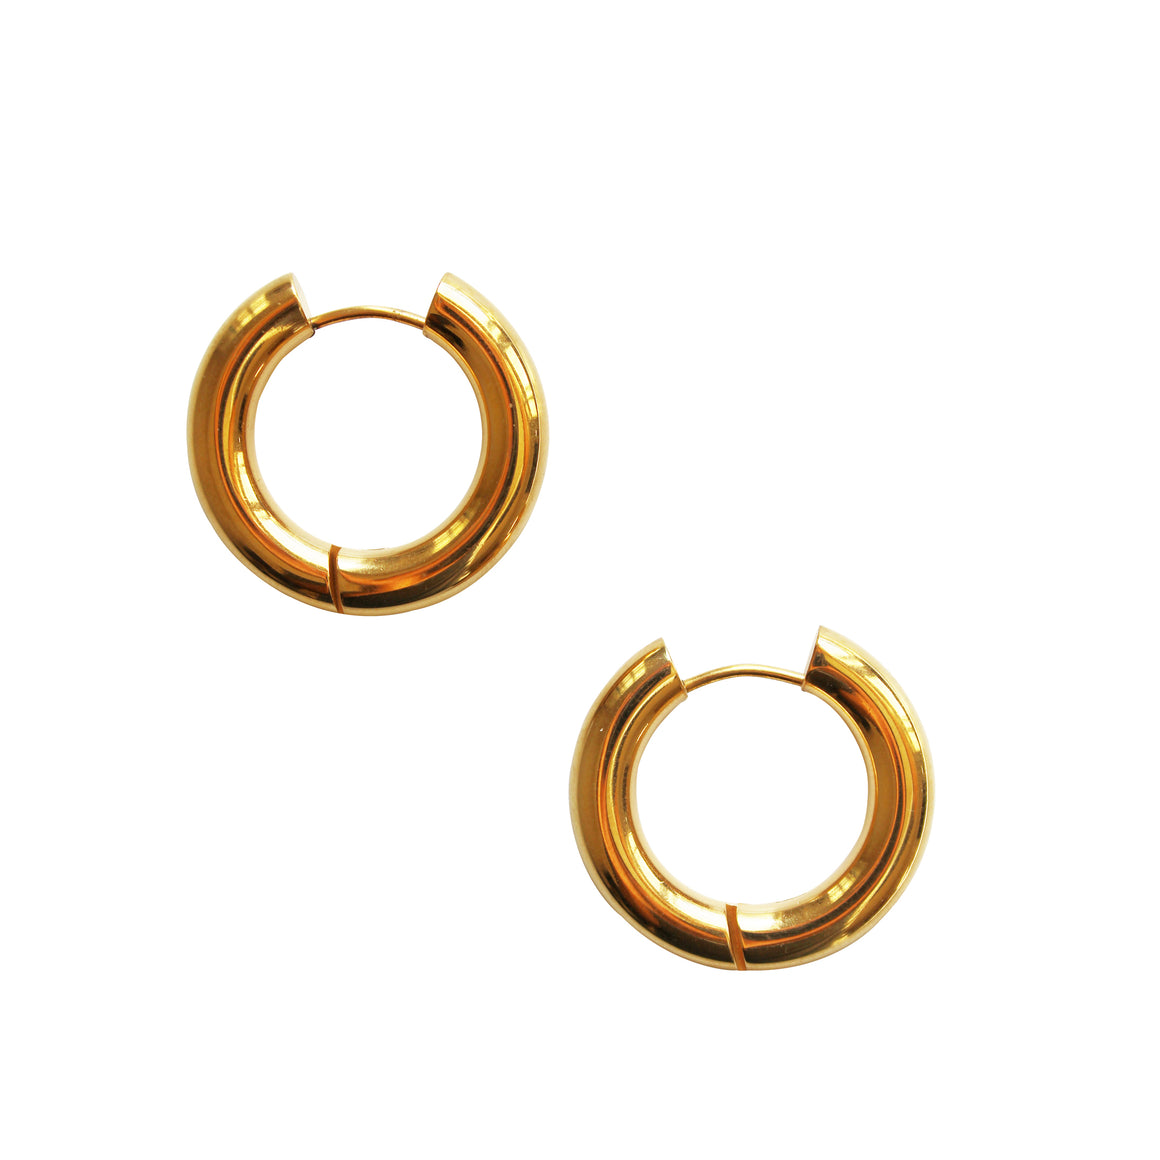 Blakely earrings